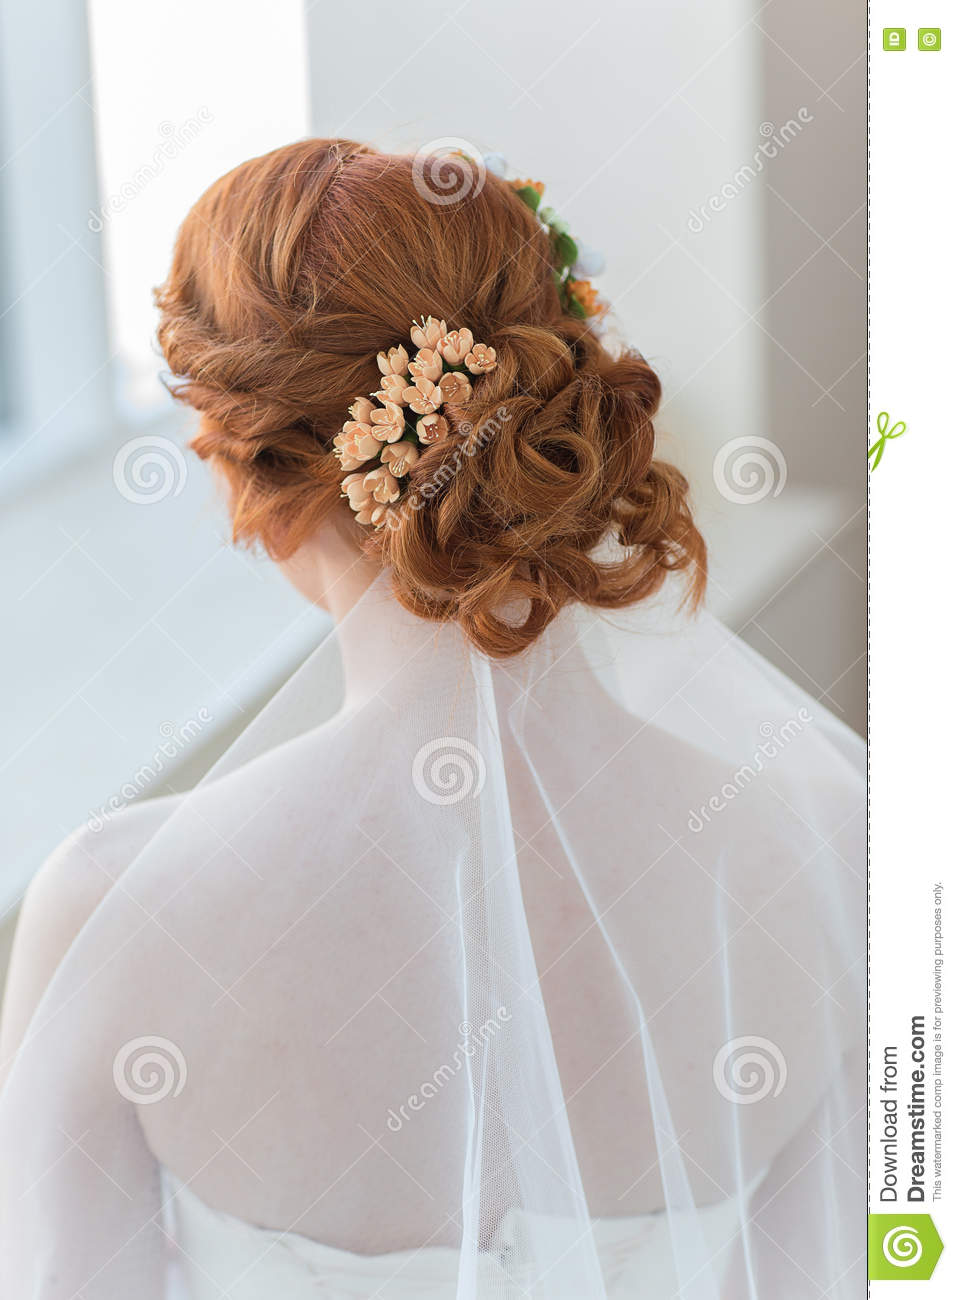 Red hair of the bride stock photo. Image of bridal, person - 71546014